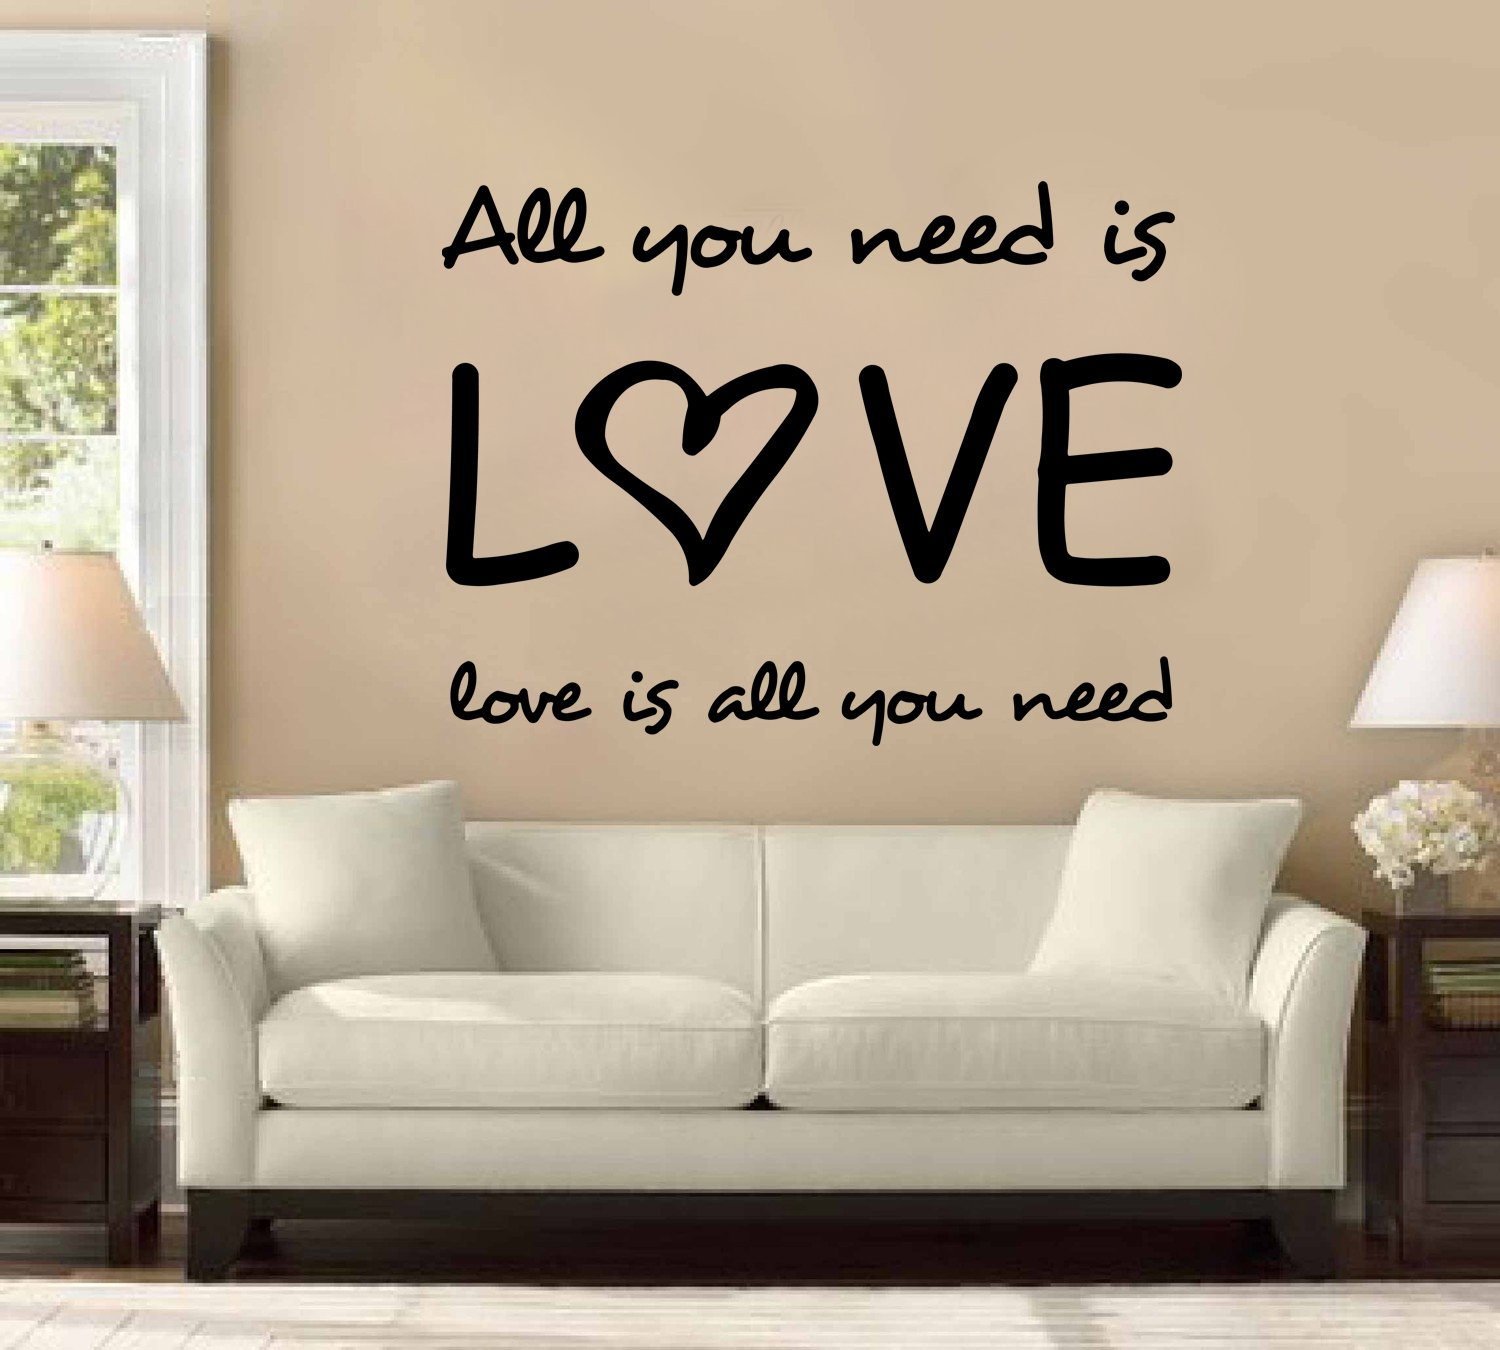 Amazon.com All You Need Is Love the Beatles Large Wall Decal Sticker Home Decoration Decor Home u0026 Kitchen & Amazon.com: All You Need Is Love the Beatles Large Wall Decal ...